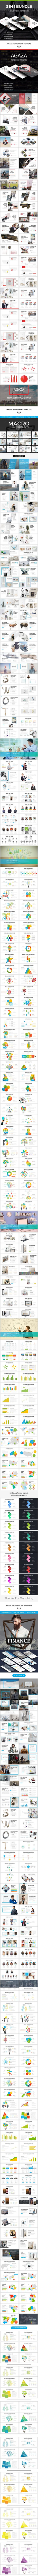 3 In 1 Creativer Powerpoint Template. Download here: https://graphicriver.net/item/3-in-1-creativer-powerpoint-template/17549560?ref=ksioks